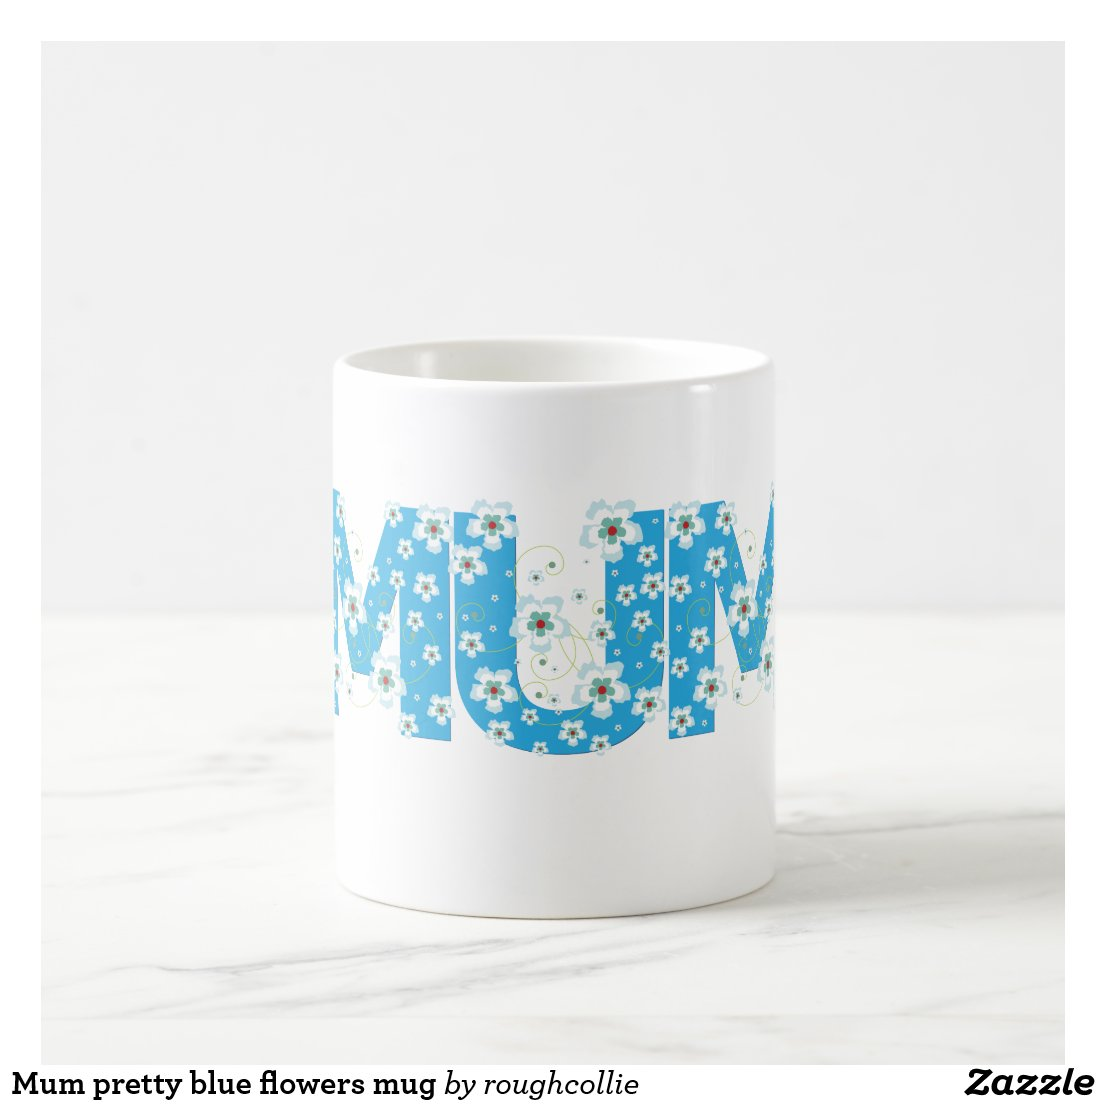 Mum pretty blue flowers mug